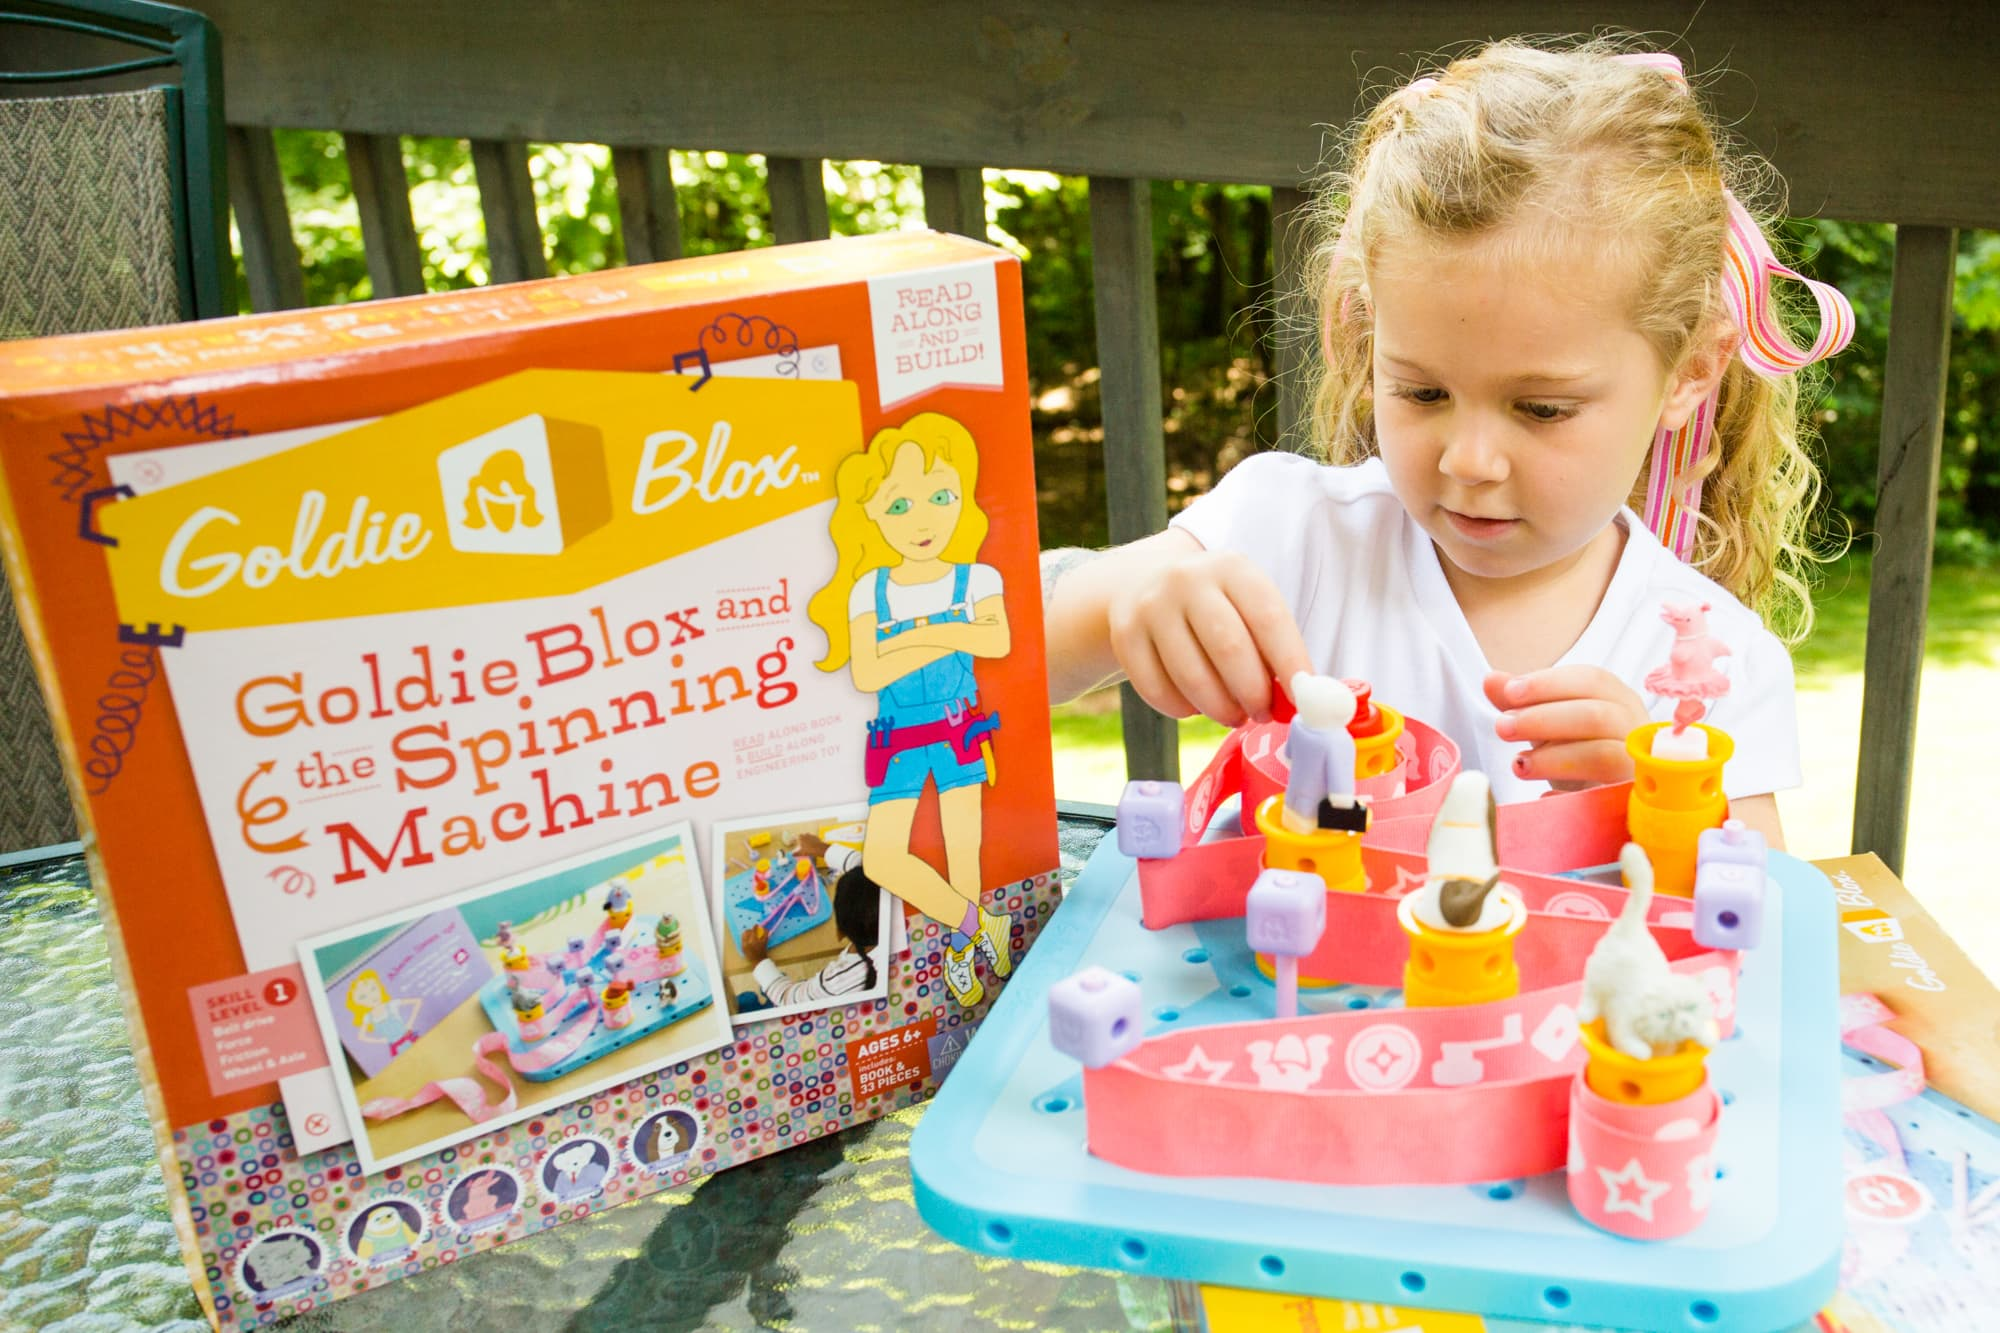 Gol Blox How an engineer created a hot toy start up for girls